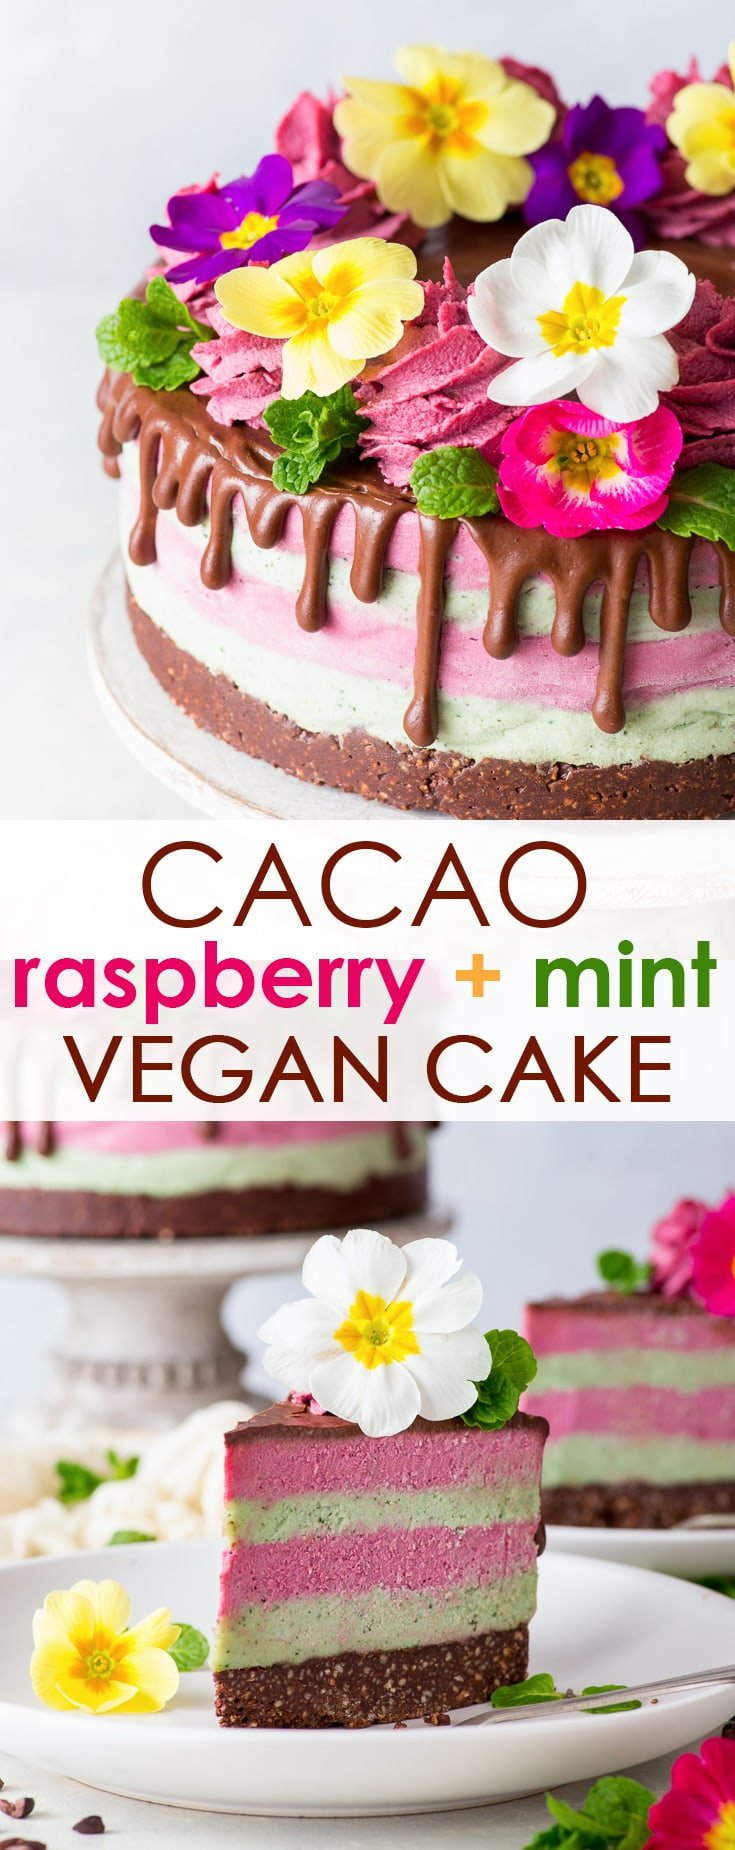 Cacao, Raspberry & Mint Vegan Cake (Gluten Free, Dairy Free, Vegan, Paleo) - [SPONSORED] It's impossible not to love this beautiful vegan cake, with its delicious flavours and textures. From the creaminess of the mint & raspberry layers, to the crunchiness of the cacao almond crust, this vegan dessert tastes just as good as it looks. Raw vegan dessert recipes. Paleo desserts. Healthy cake recipes. No bake cake. Raw vegan cheesecake. Healthy food. Healthy dessert. Healthy recipes. #vegan #cake